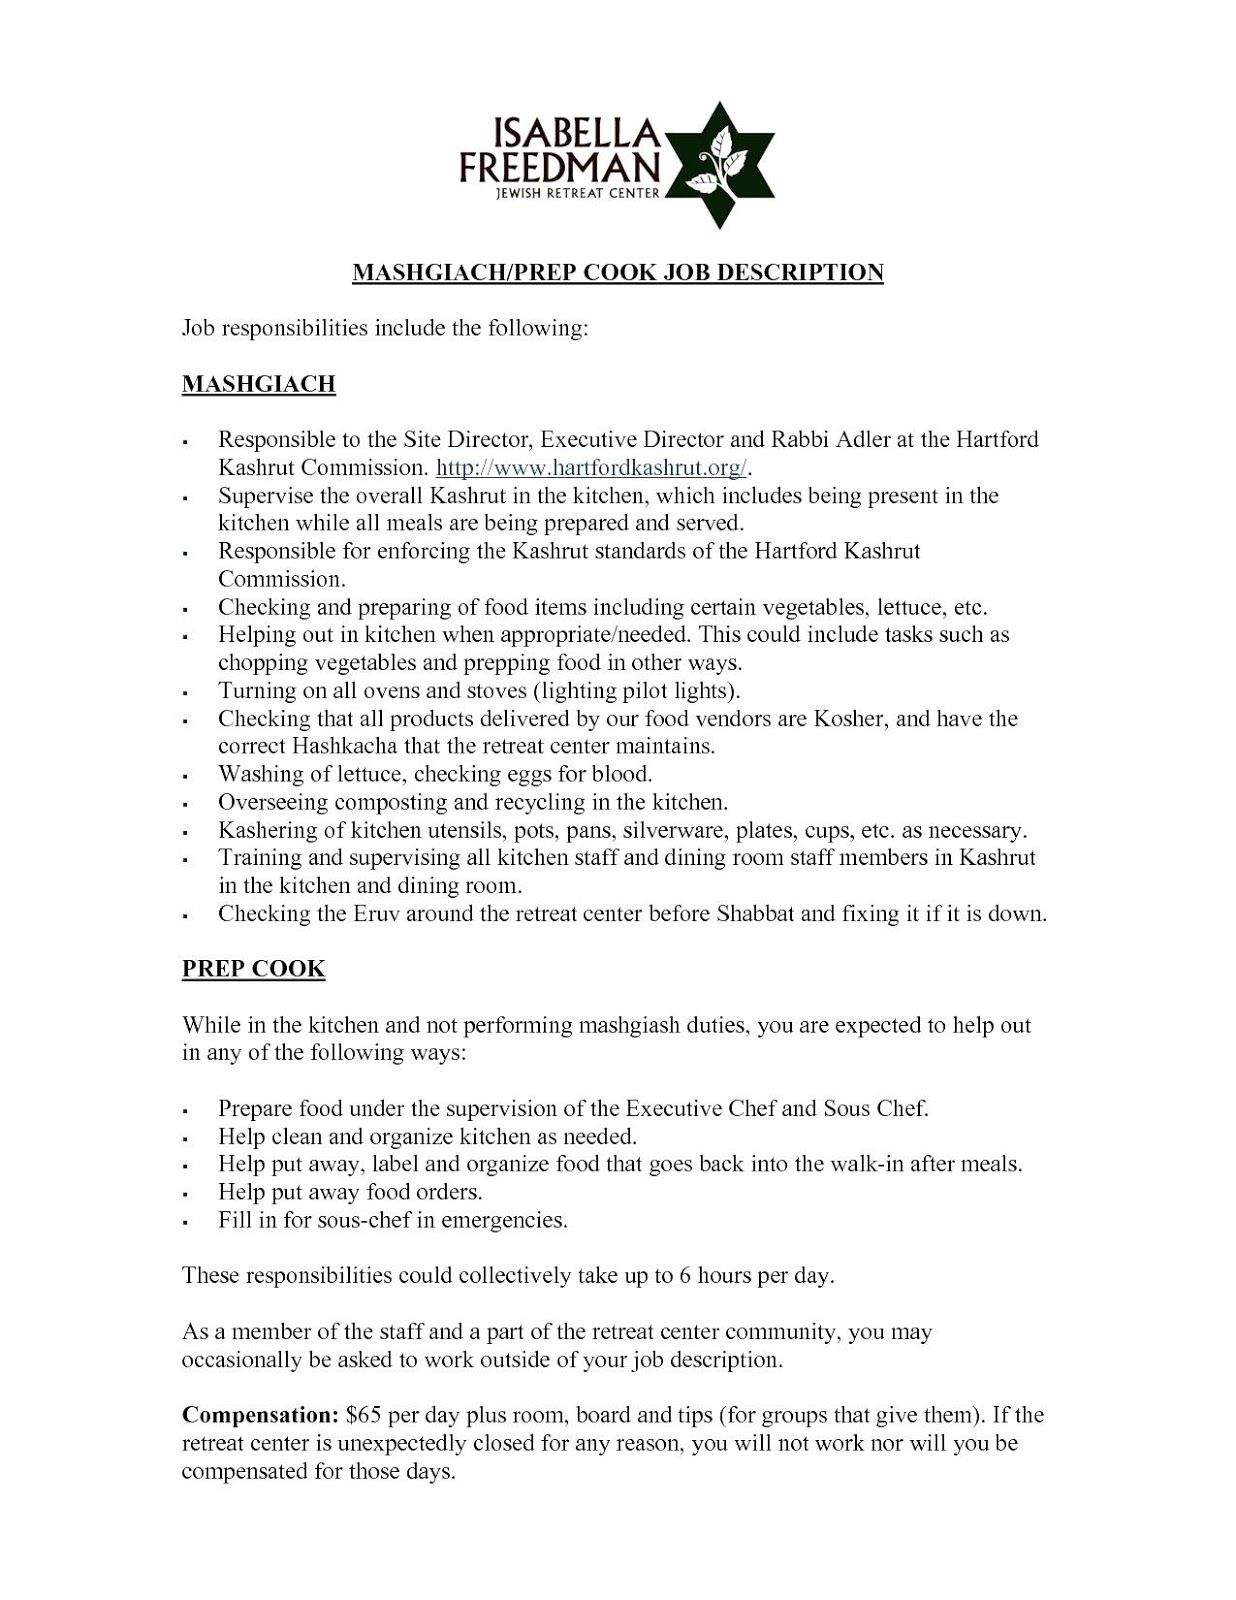 Medical Assistant Resume Examples 2019 Entry Level 2020 Click More Photo Resume Resume Best Resume Template Medical Assistant Resume Resume Template Word